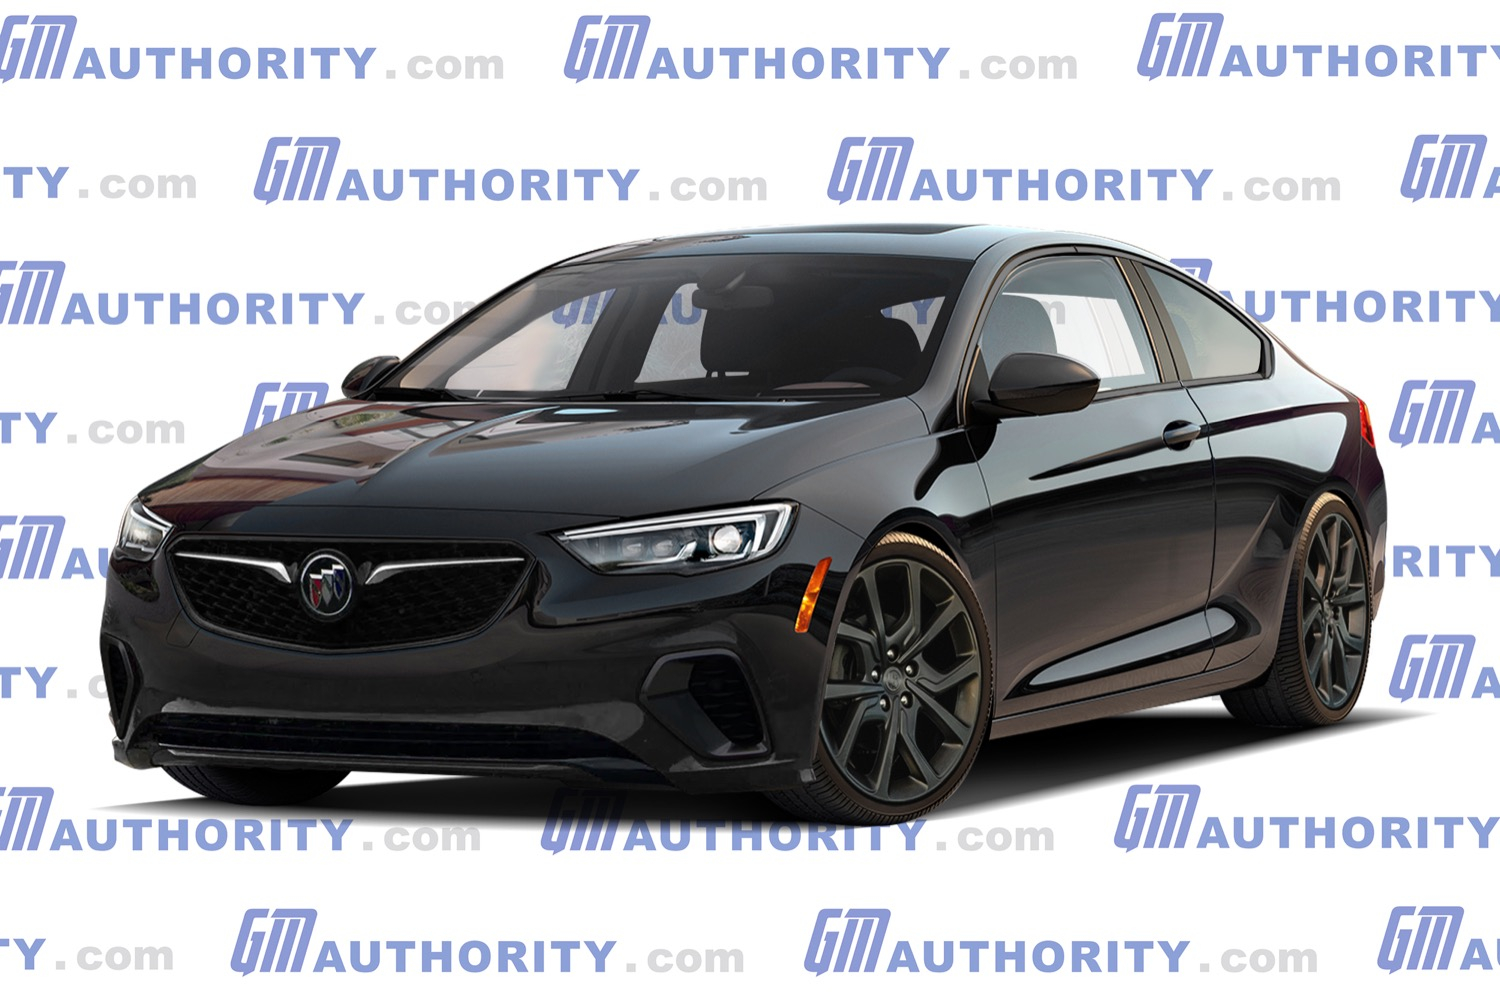 Modern Buick Regal Gnx Rendered | Gm Authority 2022 Buick Regal Reviews, Images, Price